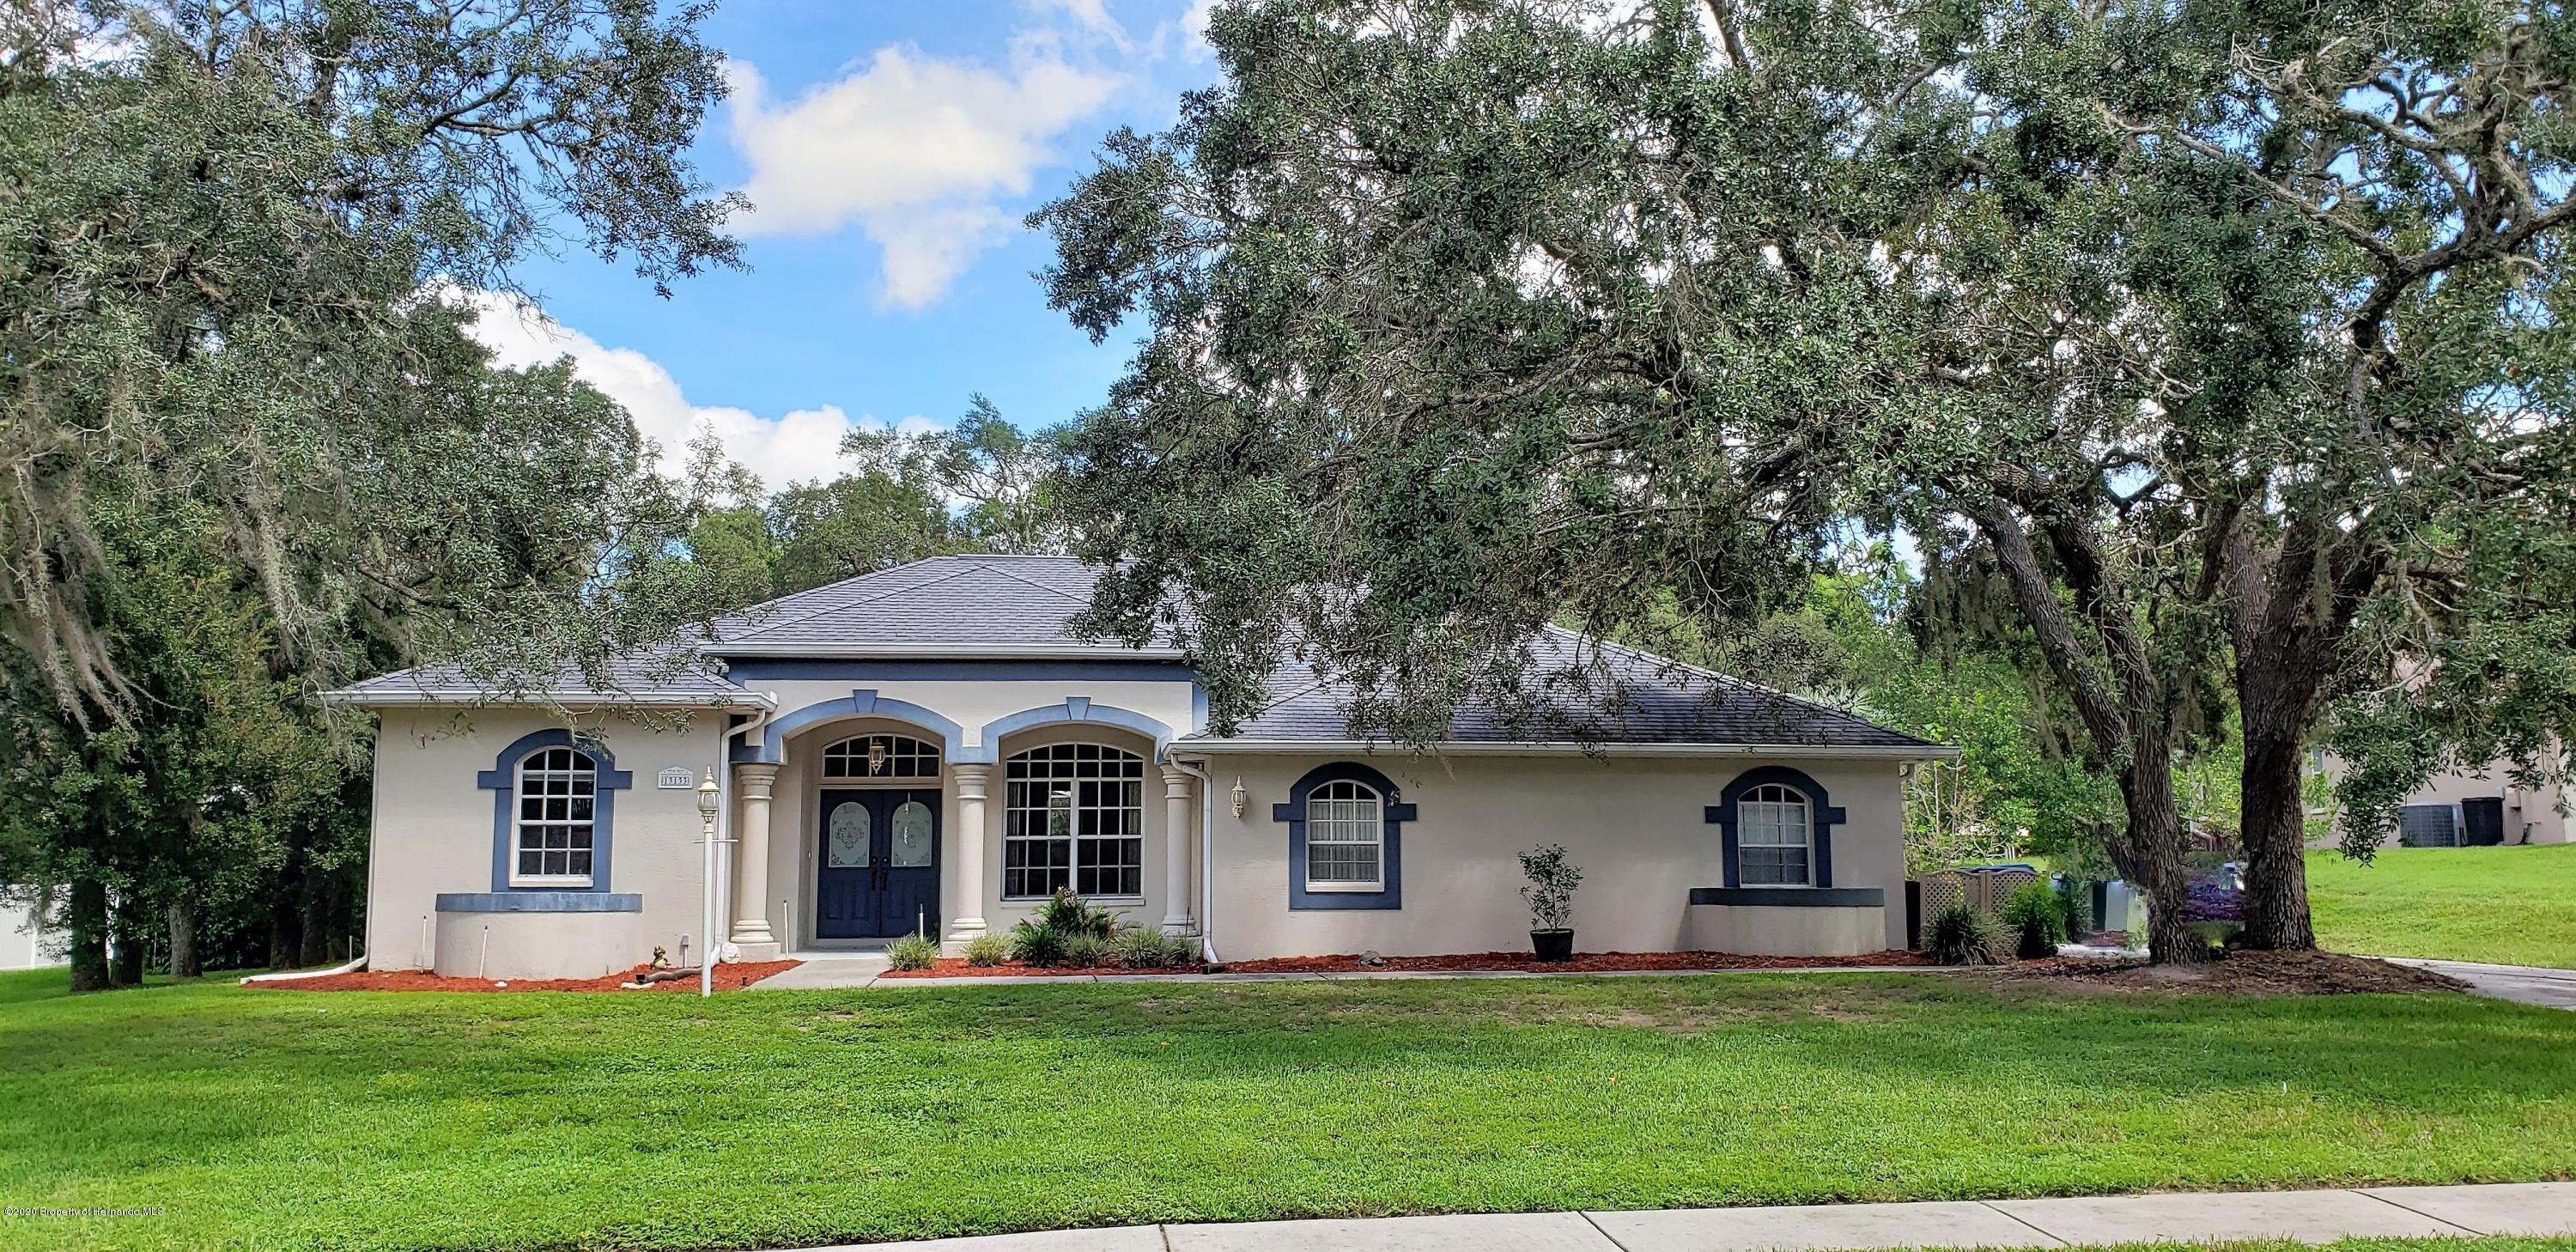 Details for 13133 Roseanna Drive, Spring Hill, FL 34609